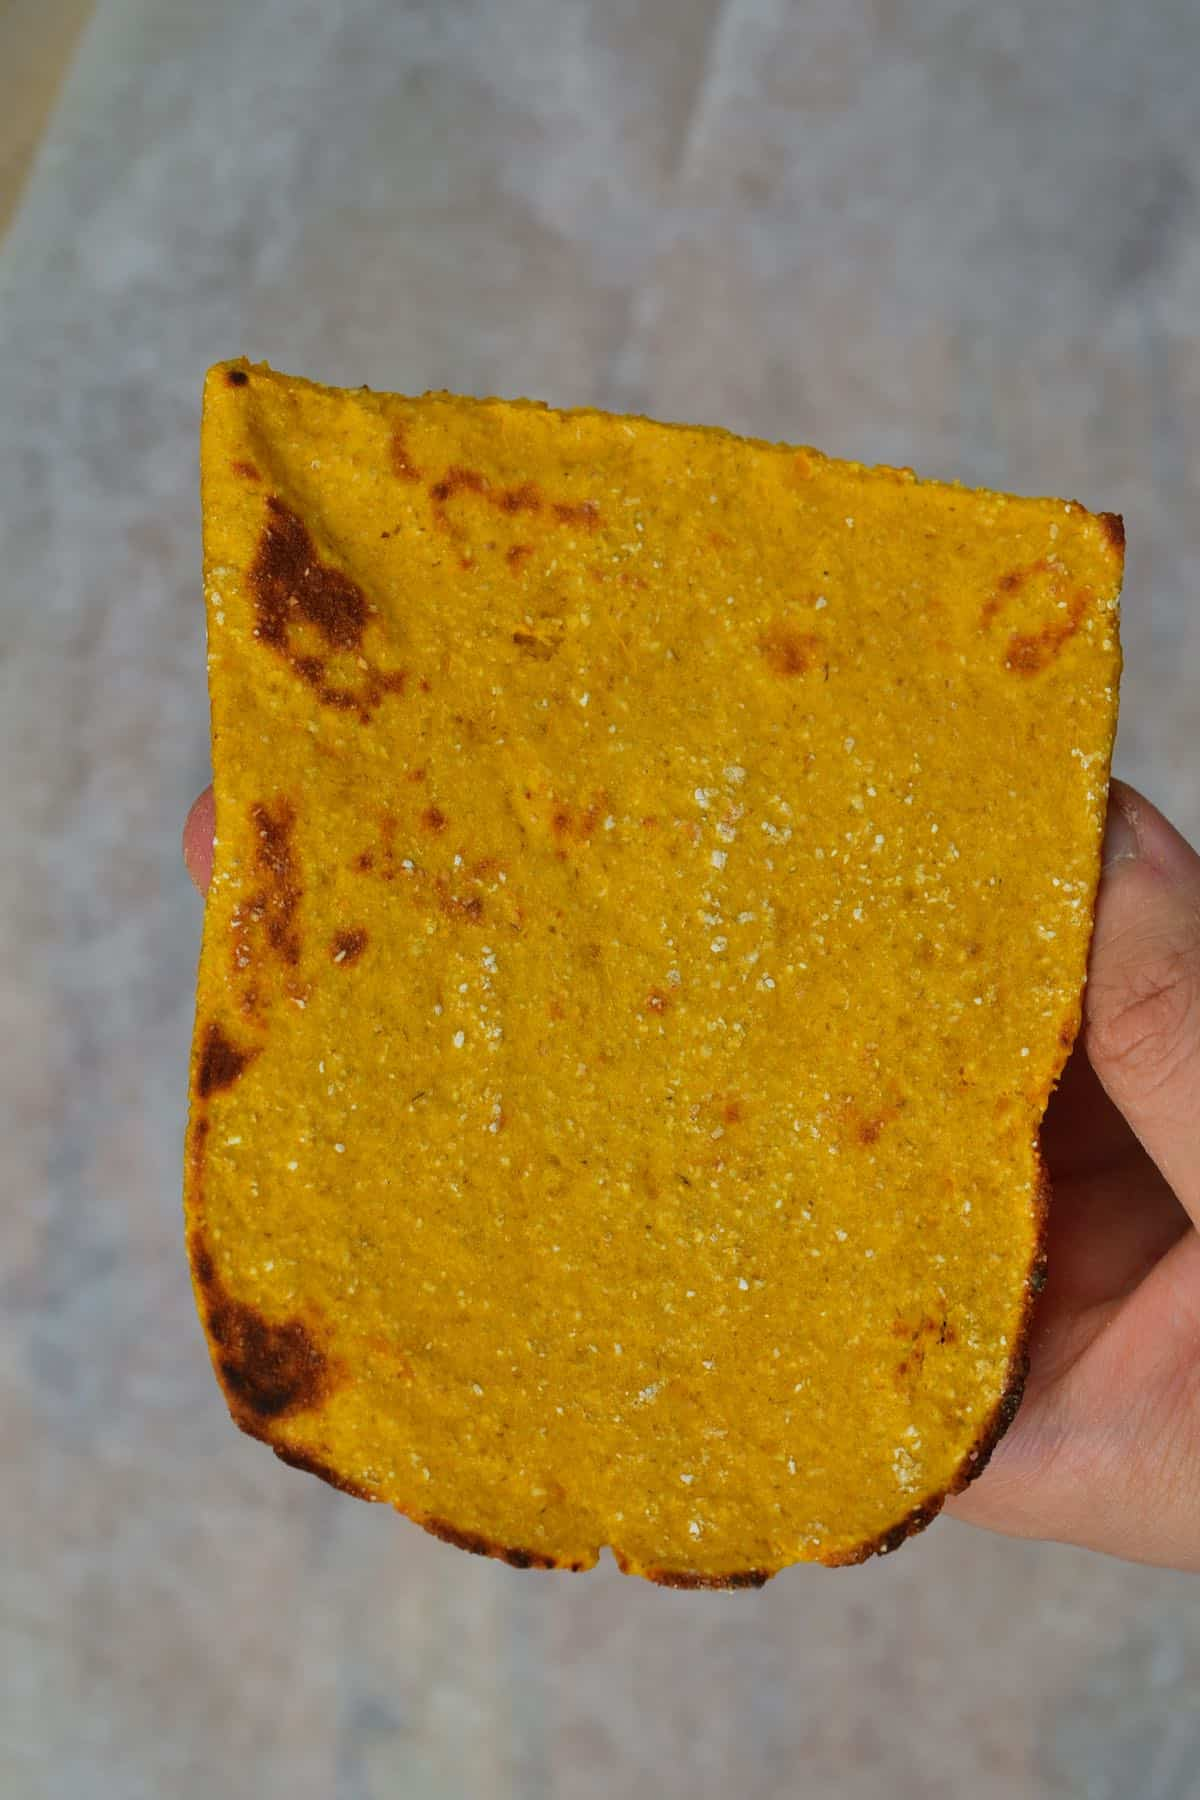 Baked square sweet potato flatfbread